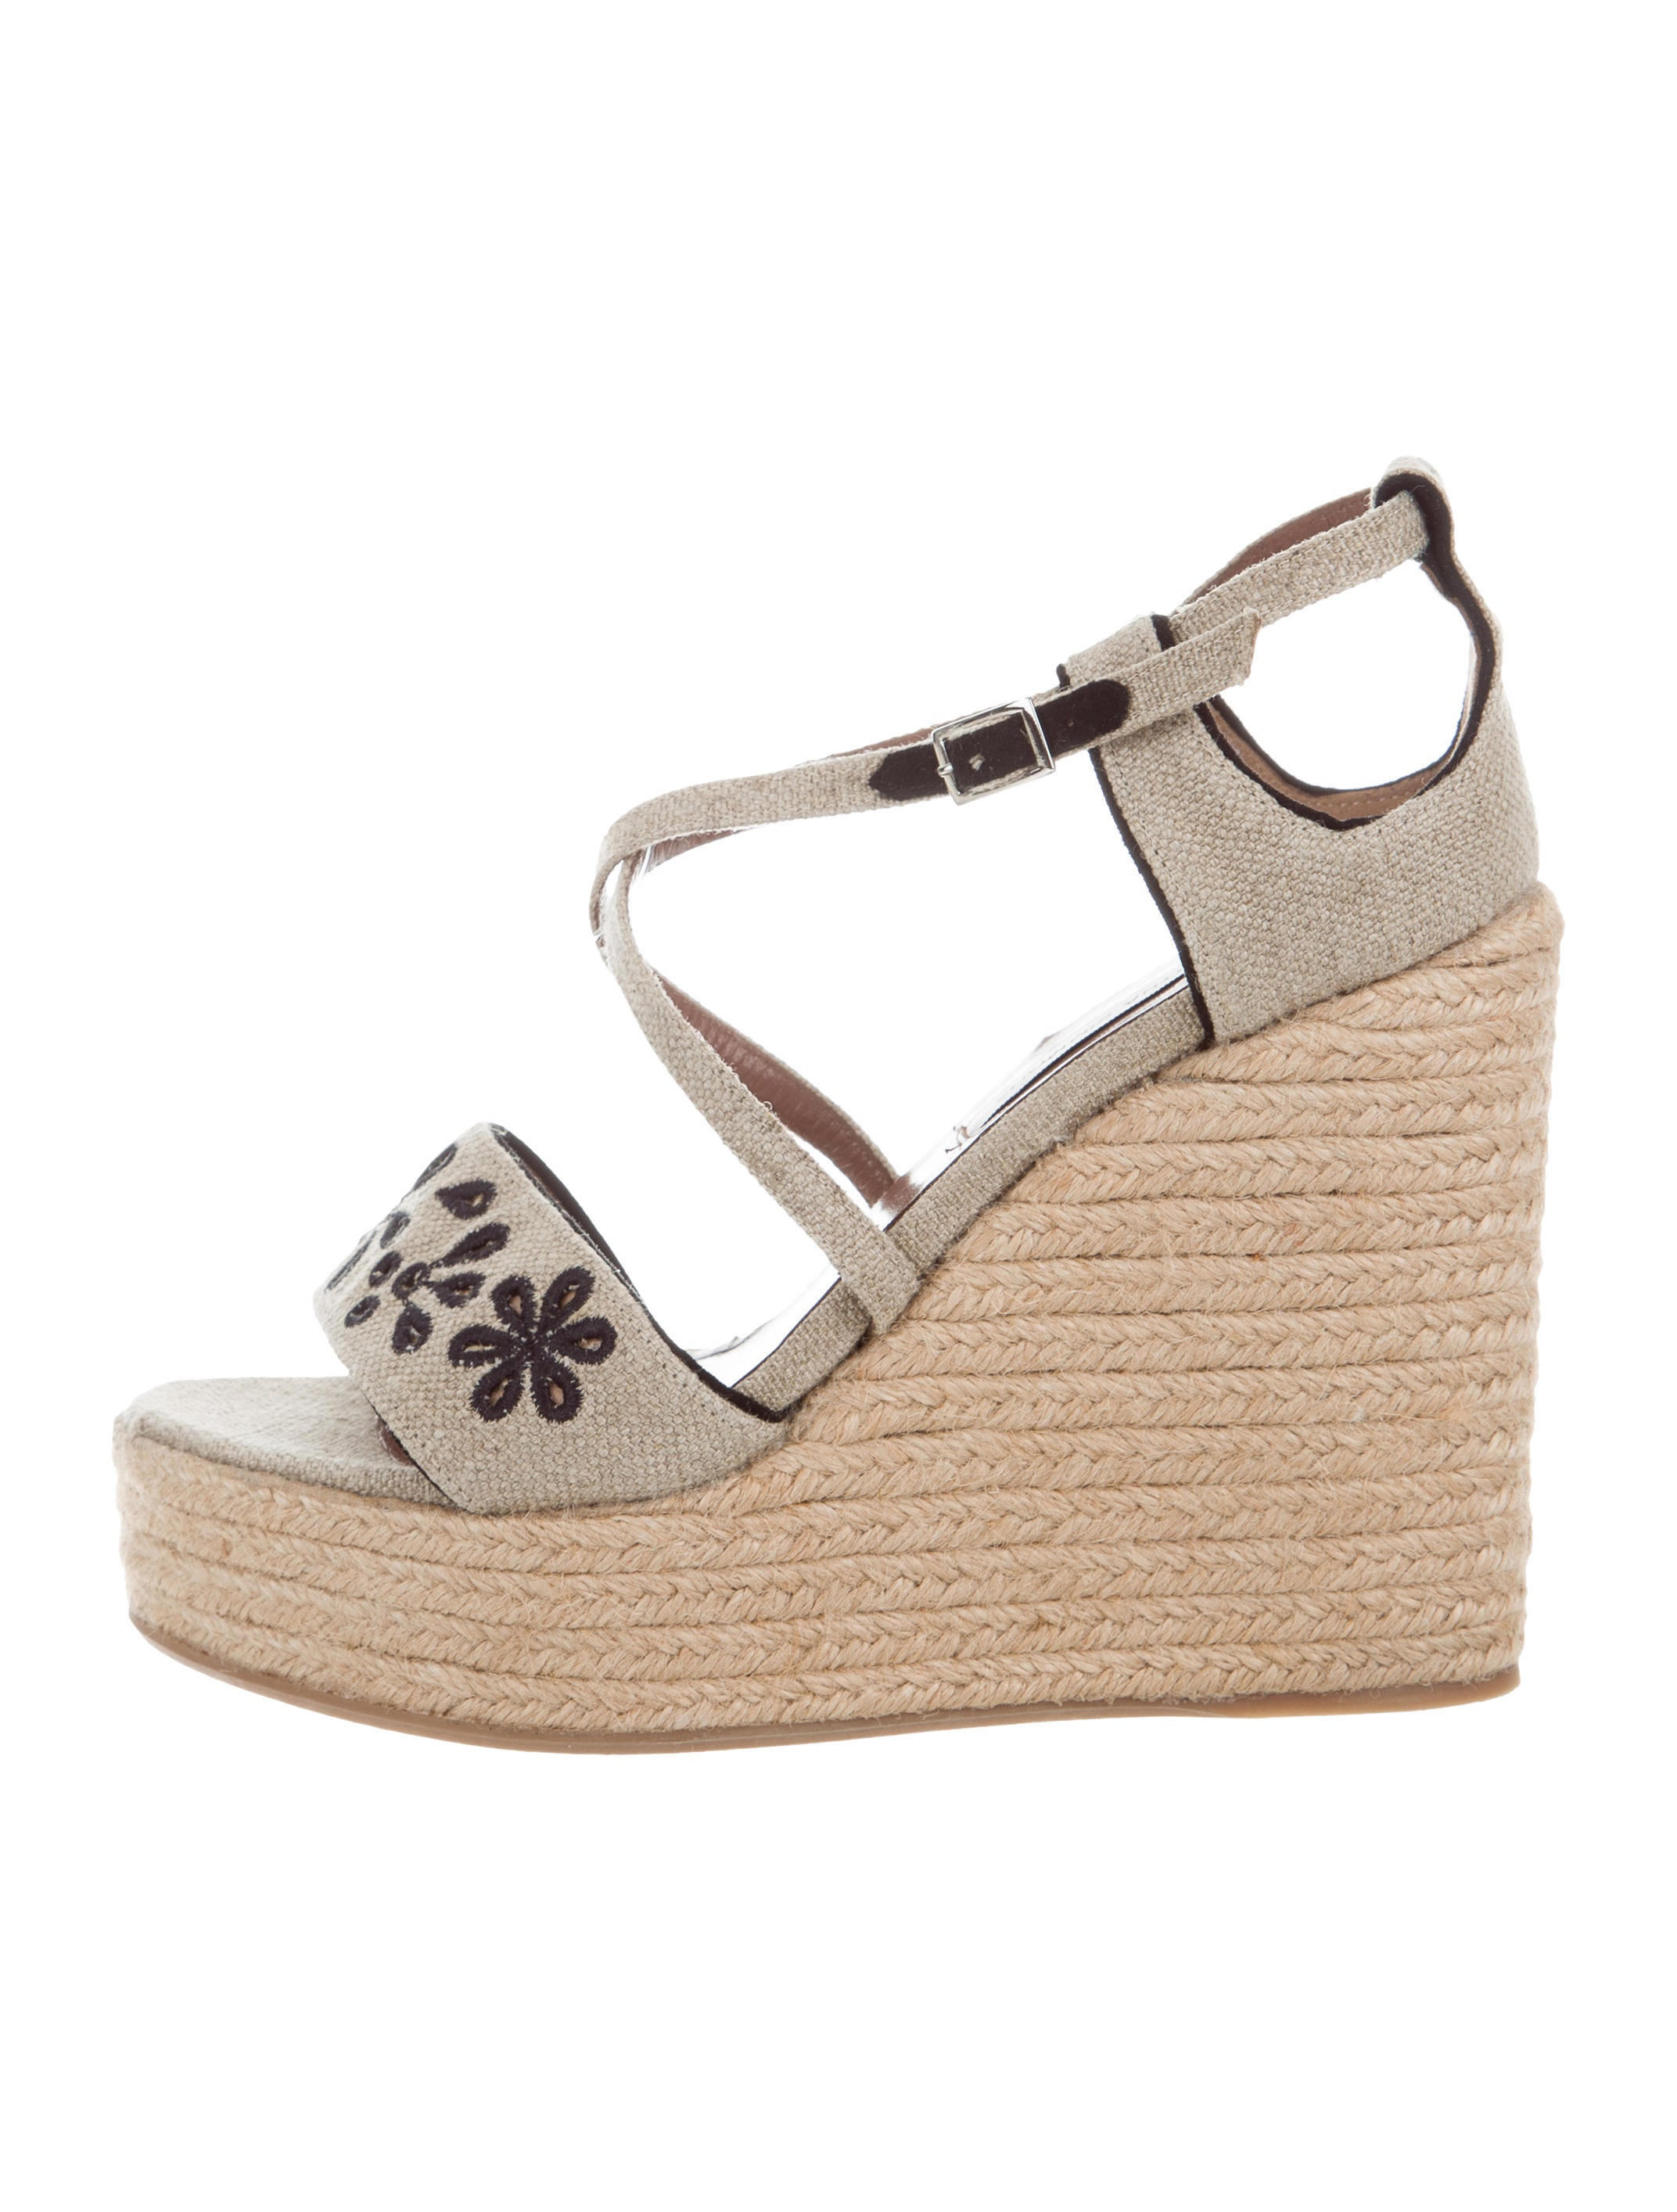 Tabitha Simmons Canvas Espadrille Wedges